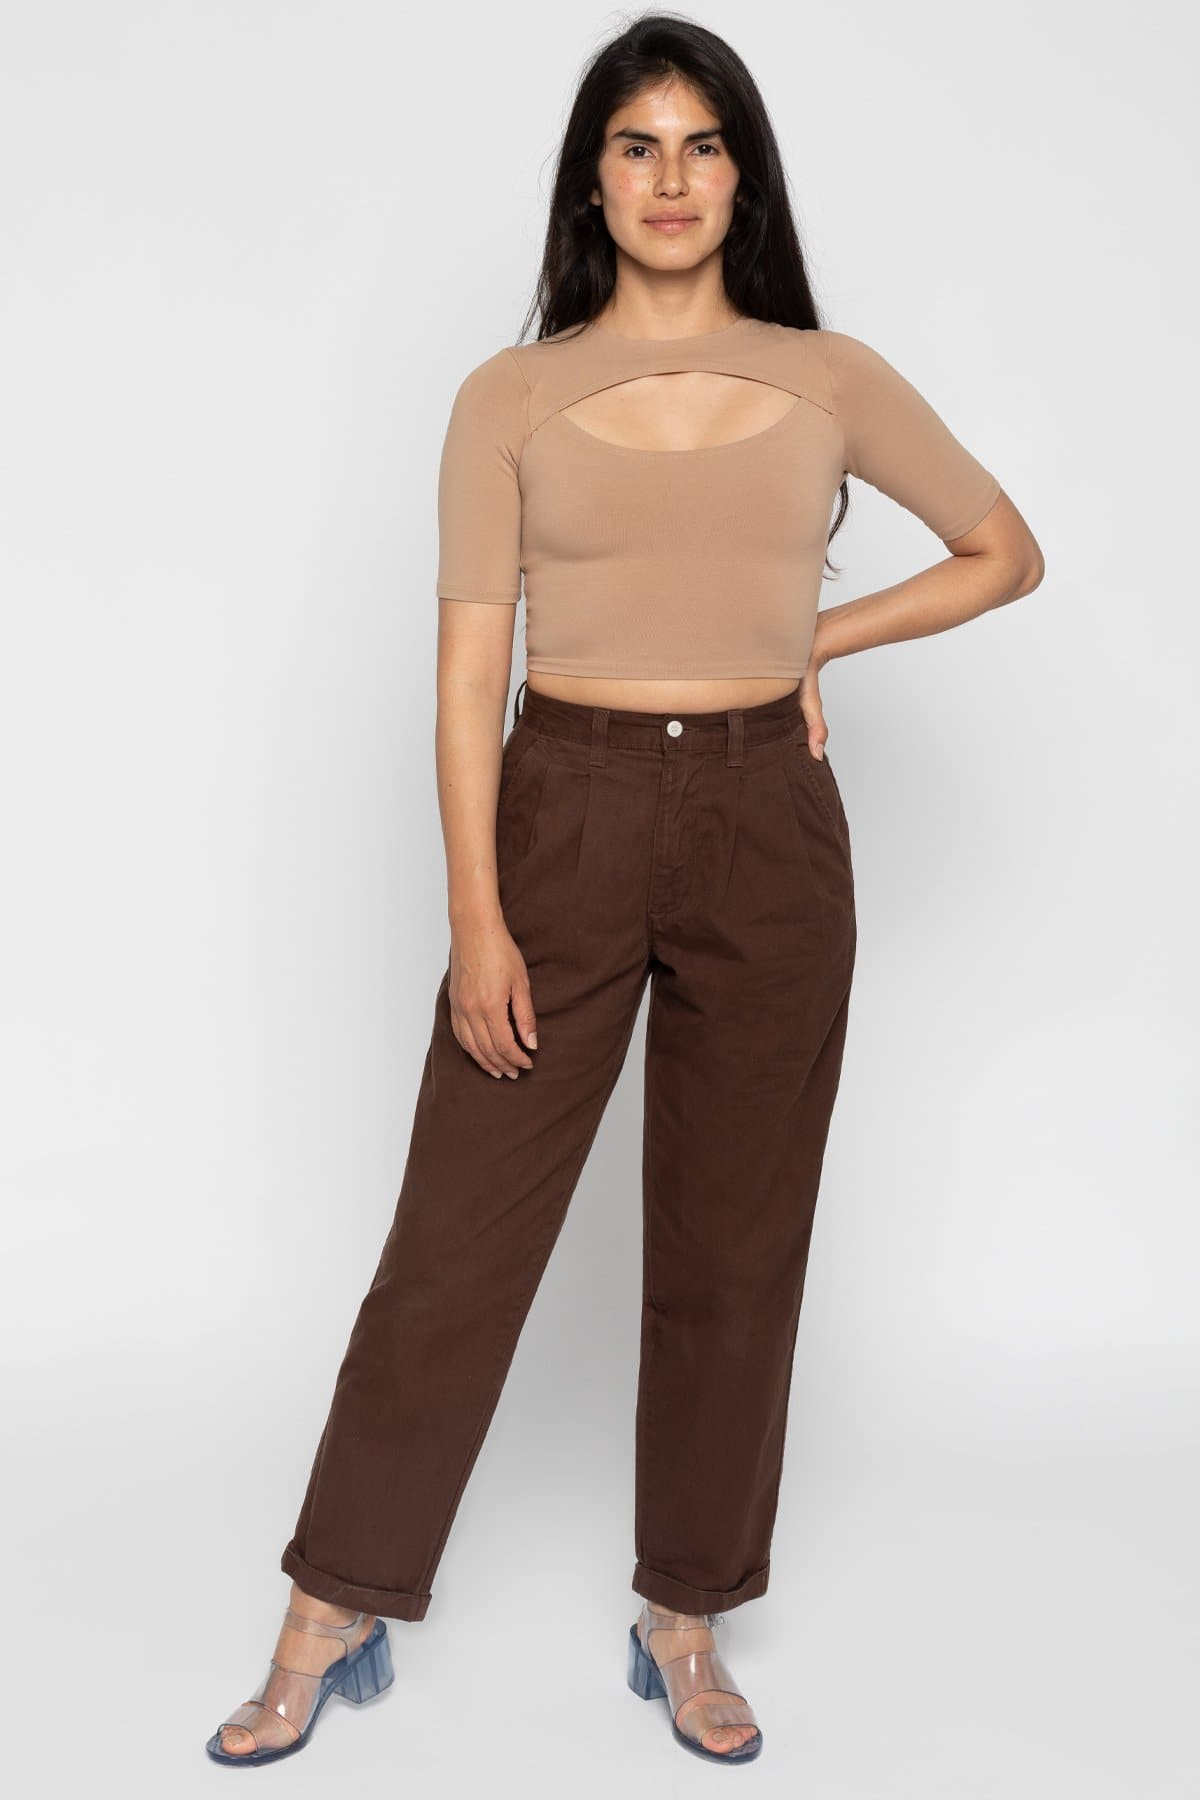 RCT304 - Relaxed Pant